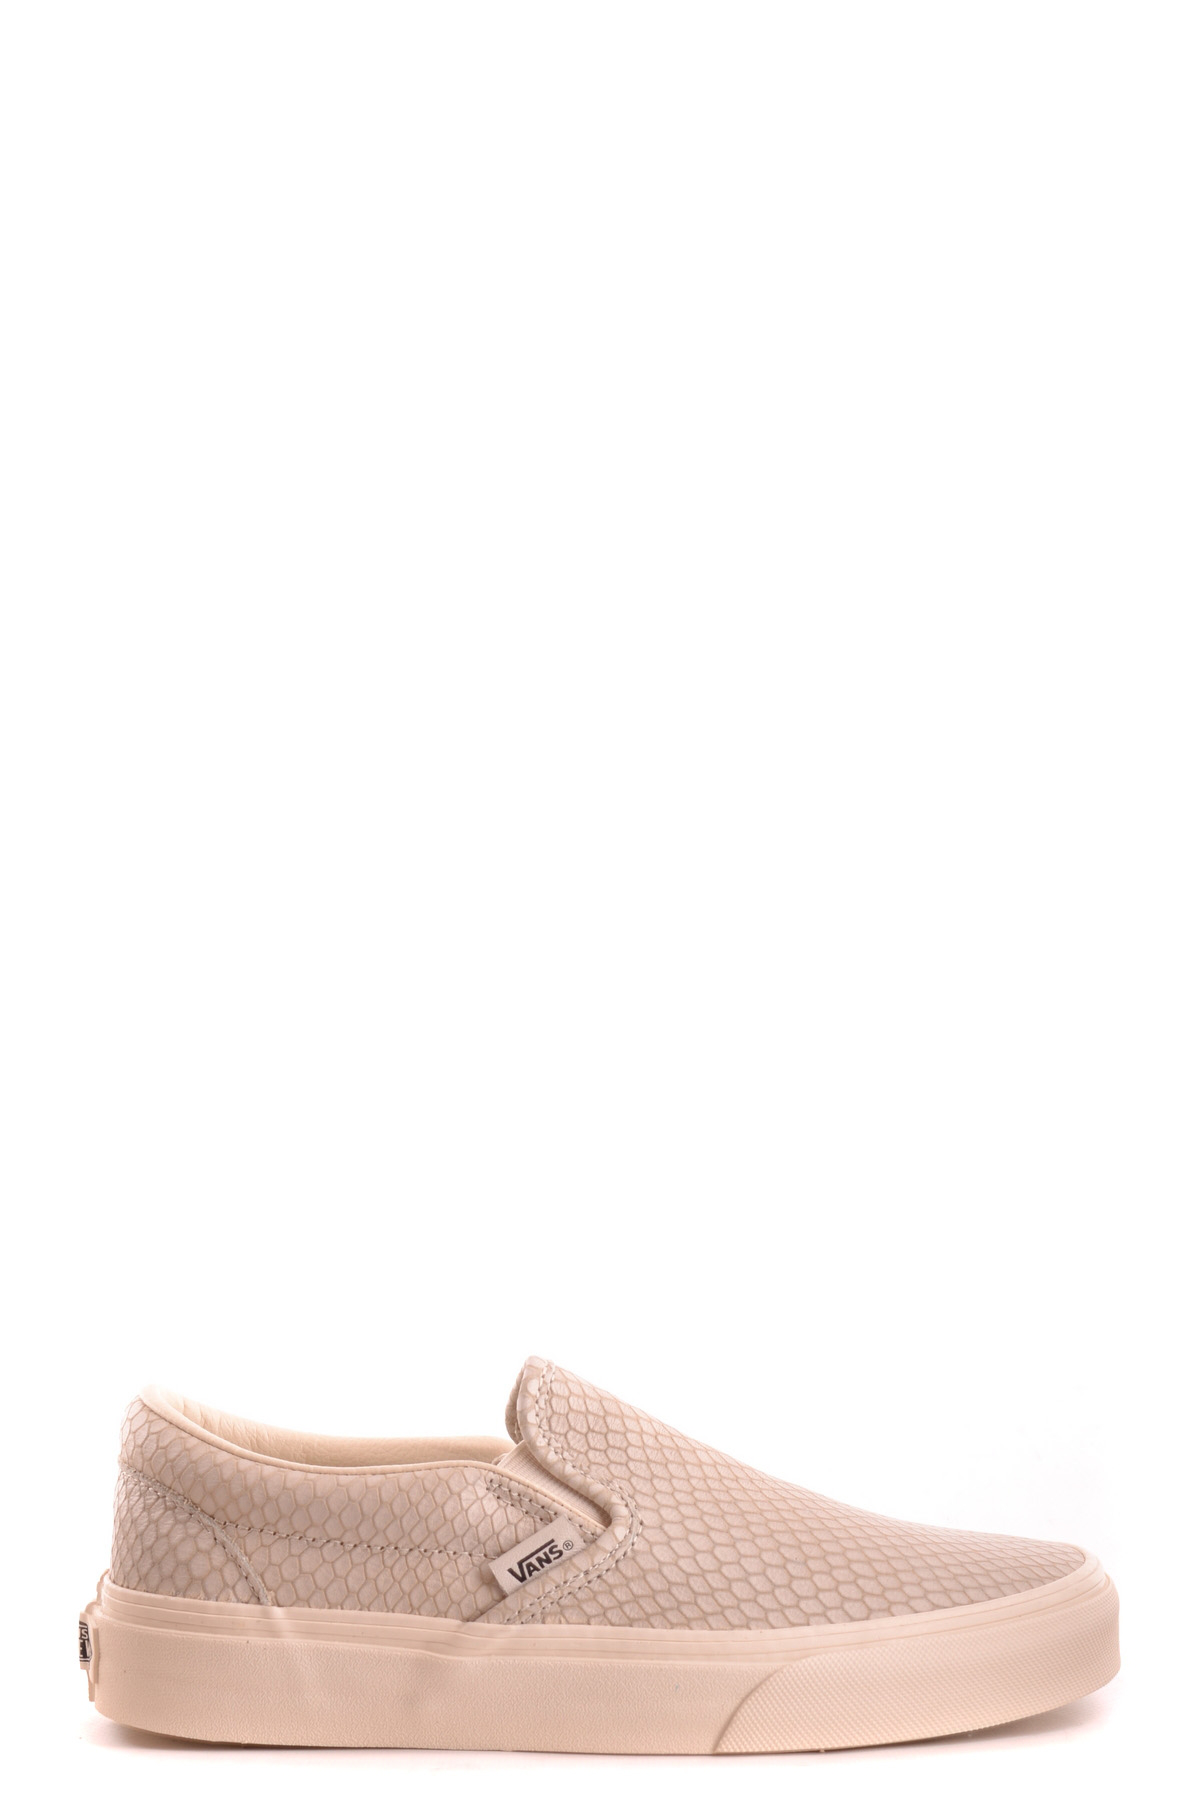 vans beige leather slip ons